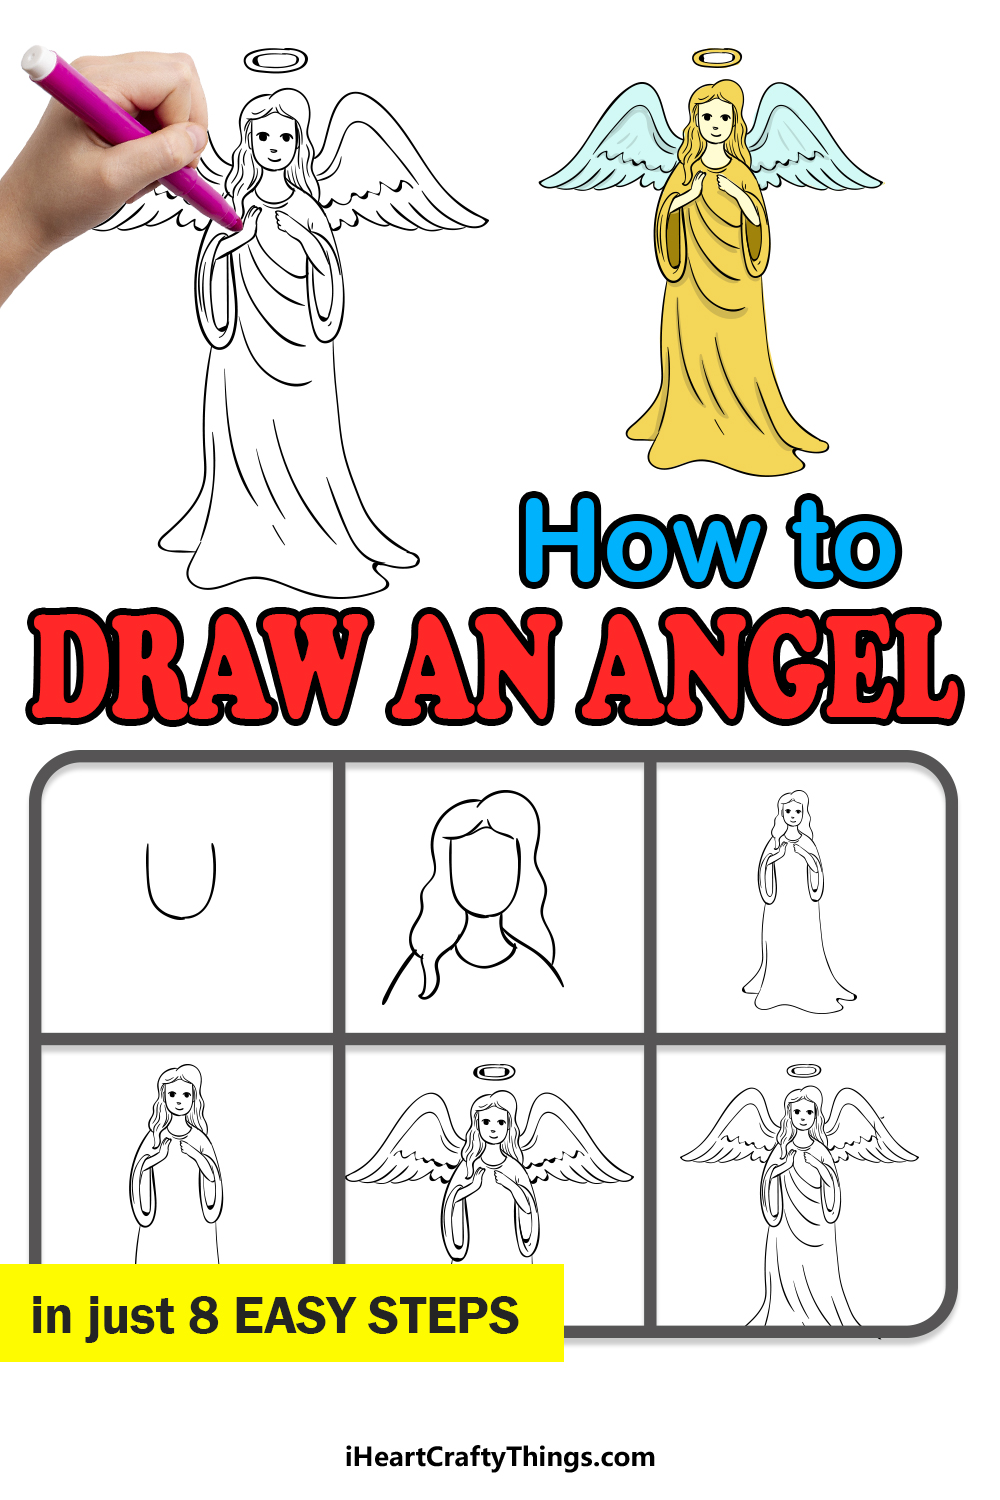 how to draw an angel in 8 easy steps